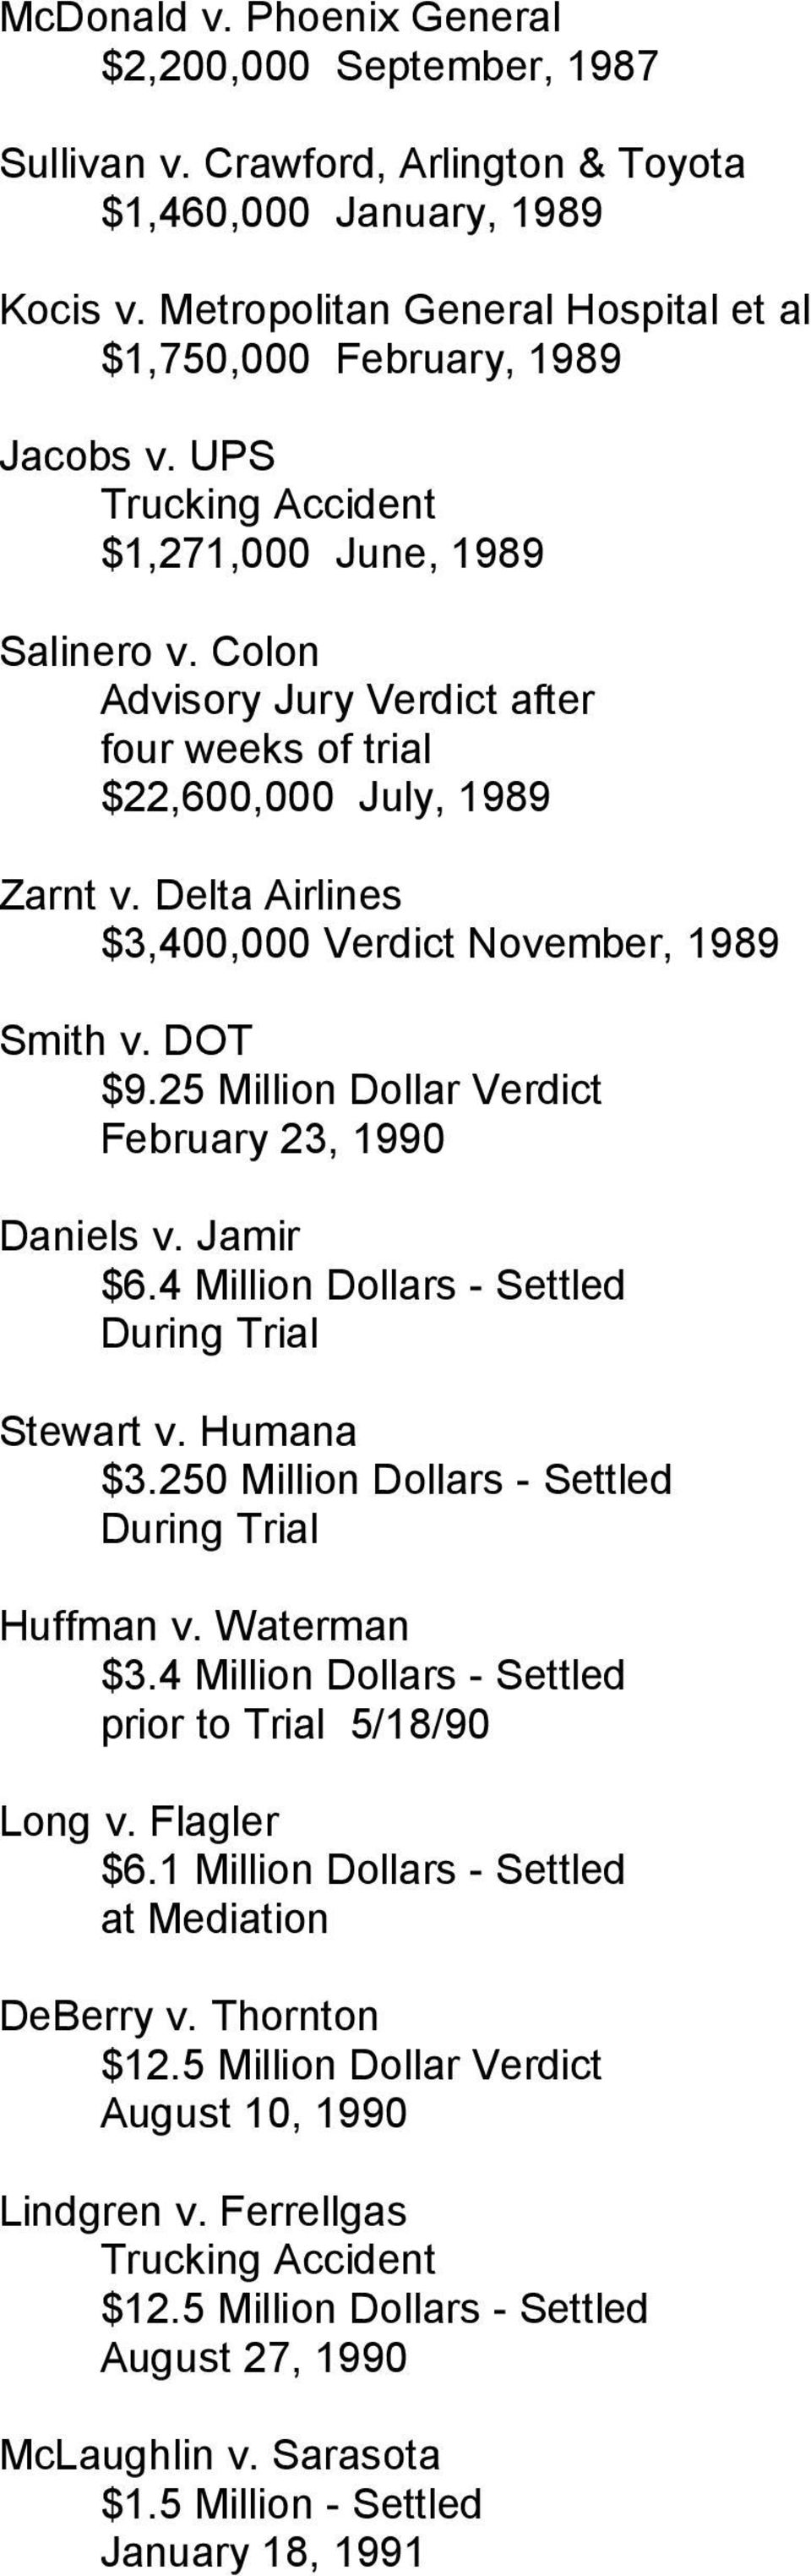 Colon Advisory Jury Verdict after four weeks of trial $22,600,000 July, 1989 Zarnt v. Delta Airlines $3,400,000 Verdict November, 1989 Smith v. DOT $9.